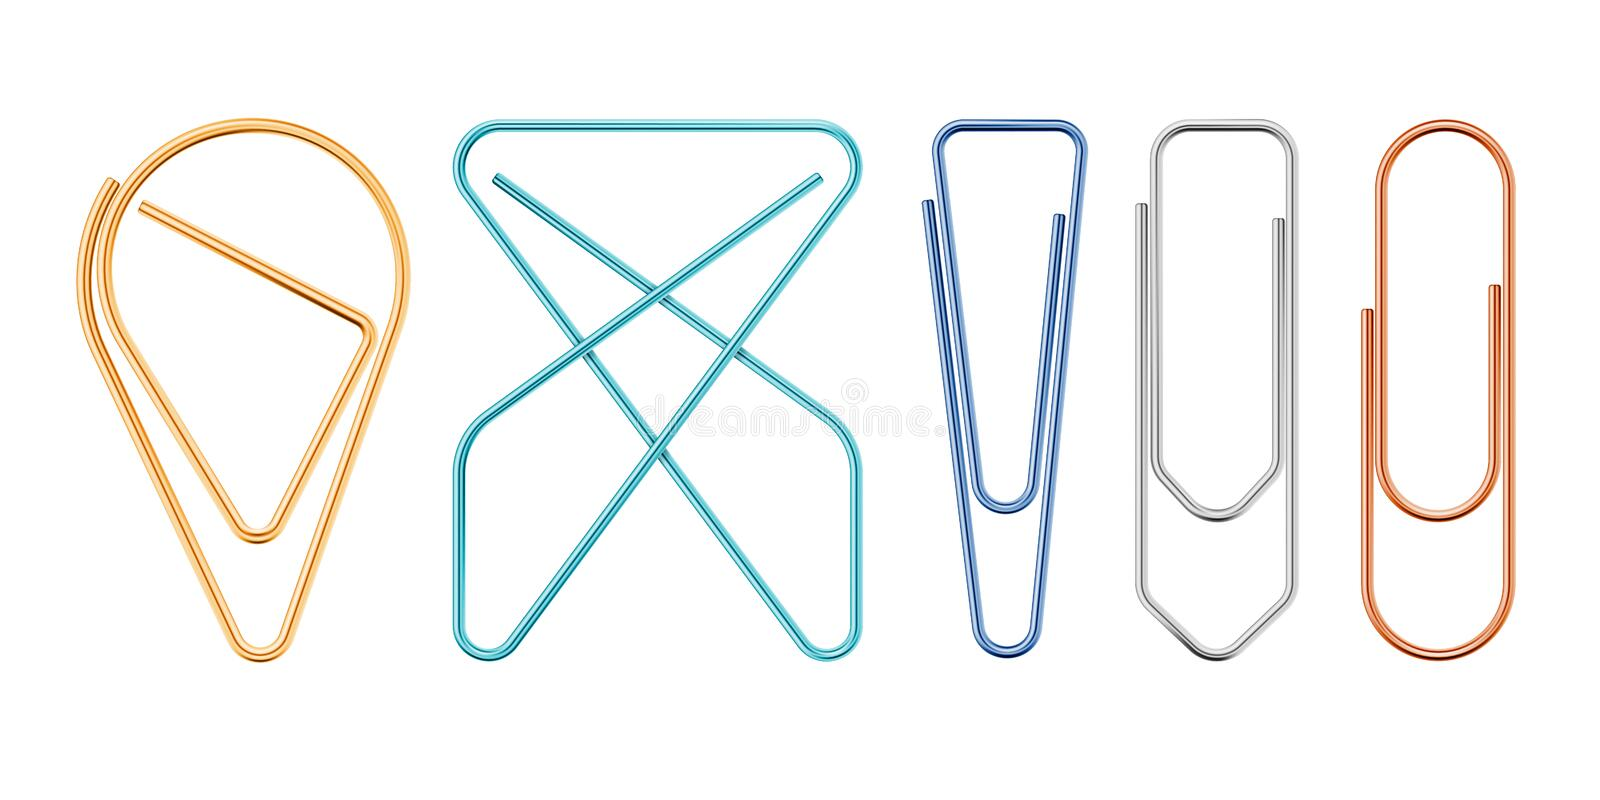 Paper Clips Of Various Sapes Vector Illustration. Paper Clips Of Various Sapes - Rounded, Squared, Triangle, Butterfly, Drop. Photo-realistic Vector 3d royalty free illustration